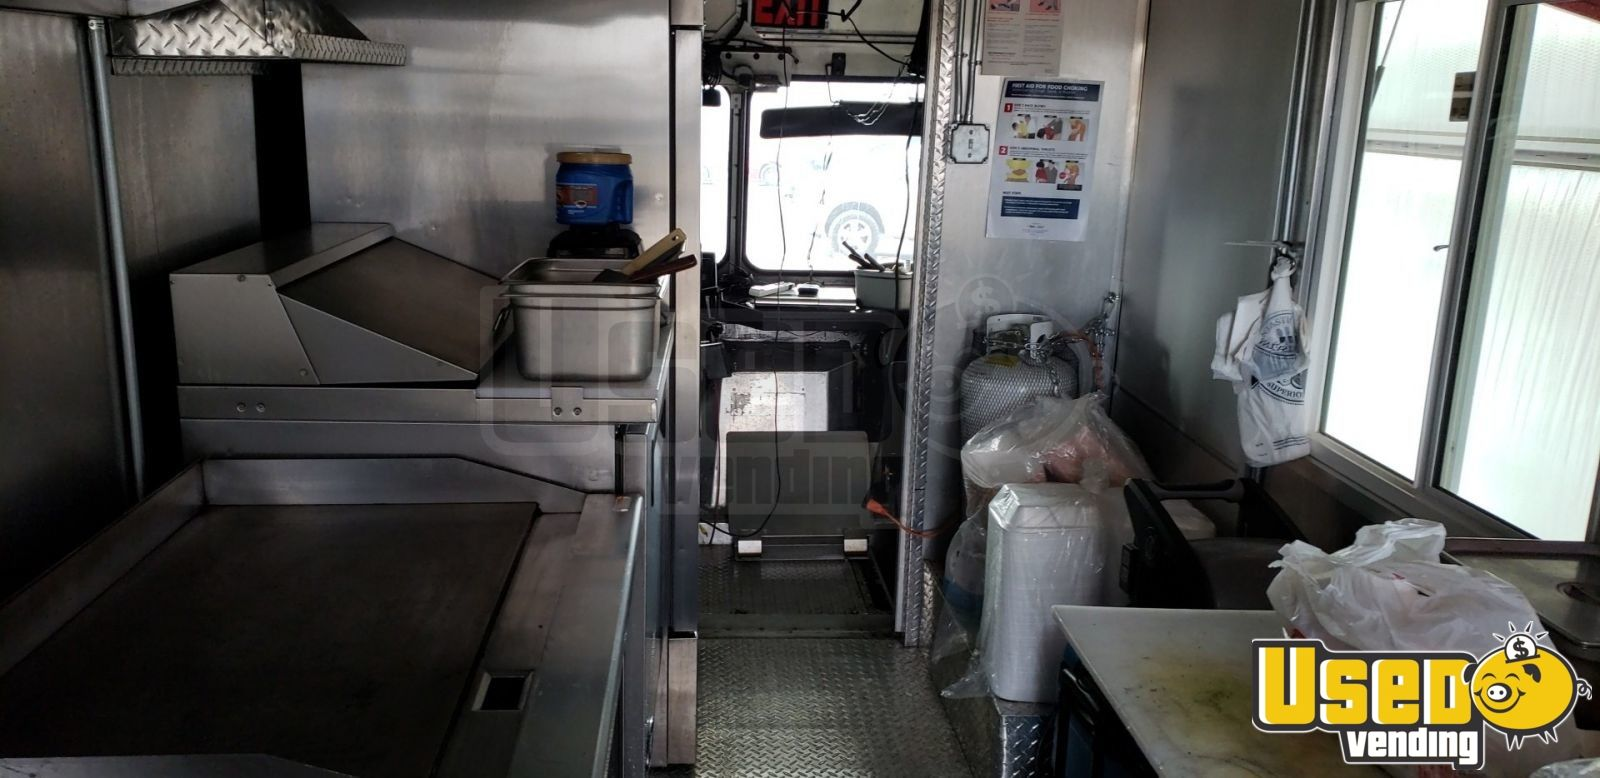 2000 Chevy Workhoarse All-purpose Food Truck Exterior Customer Counter Texas Gas Engine for Sale - 8